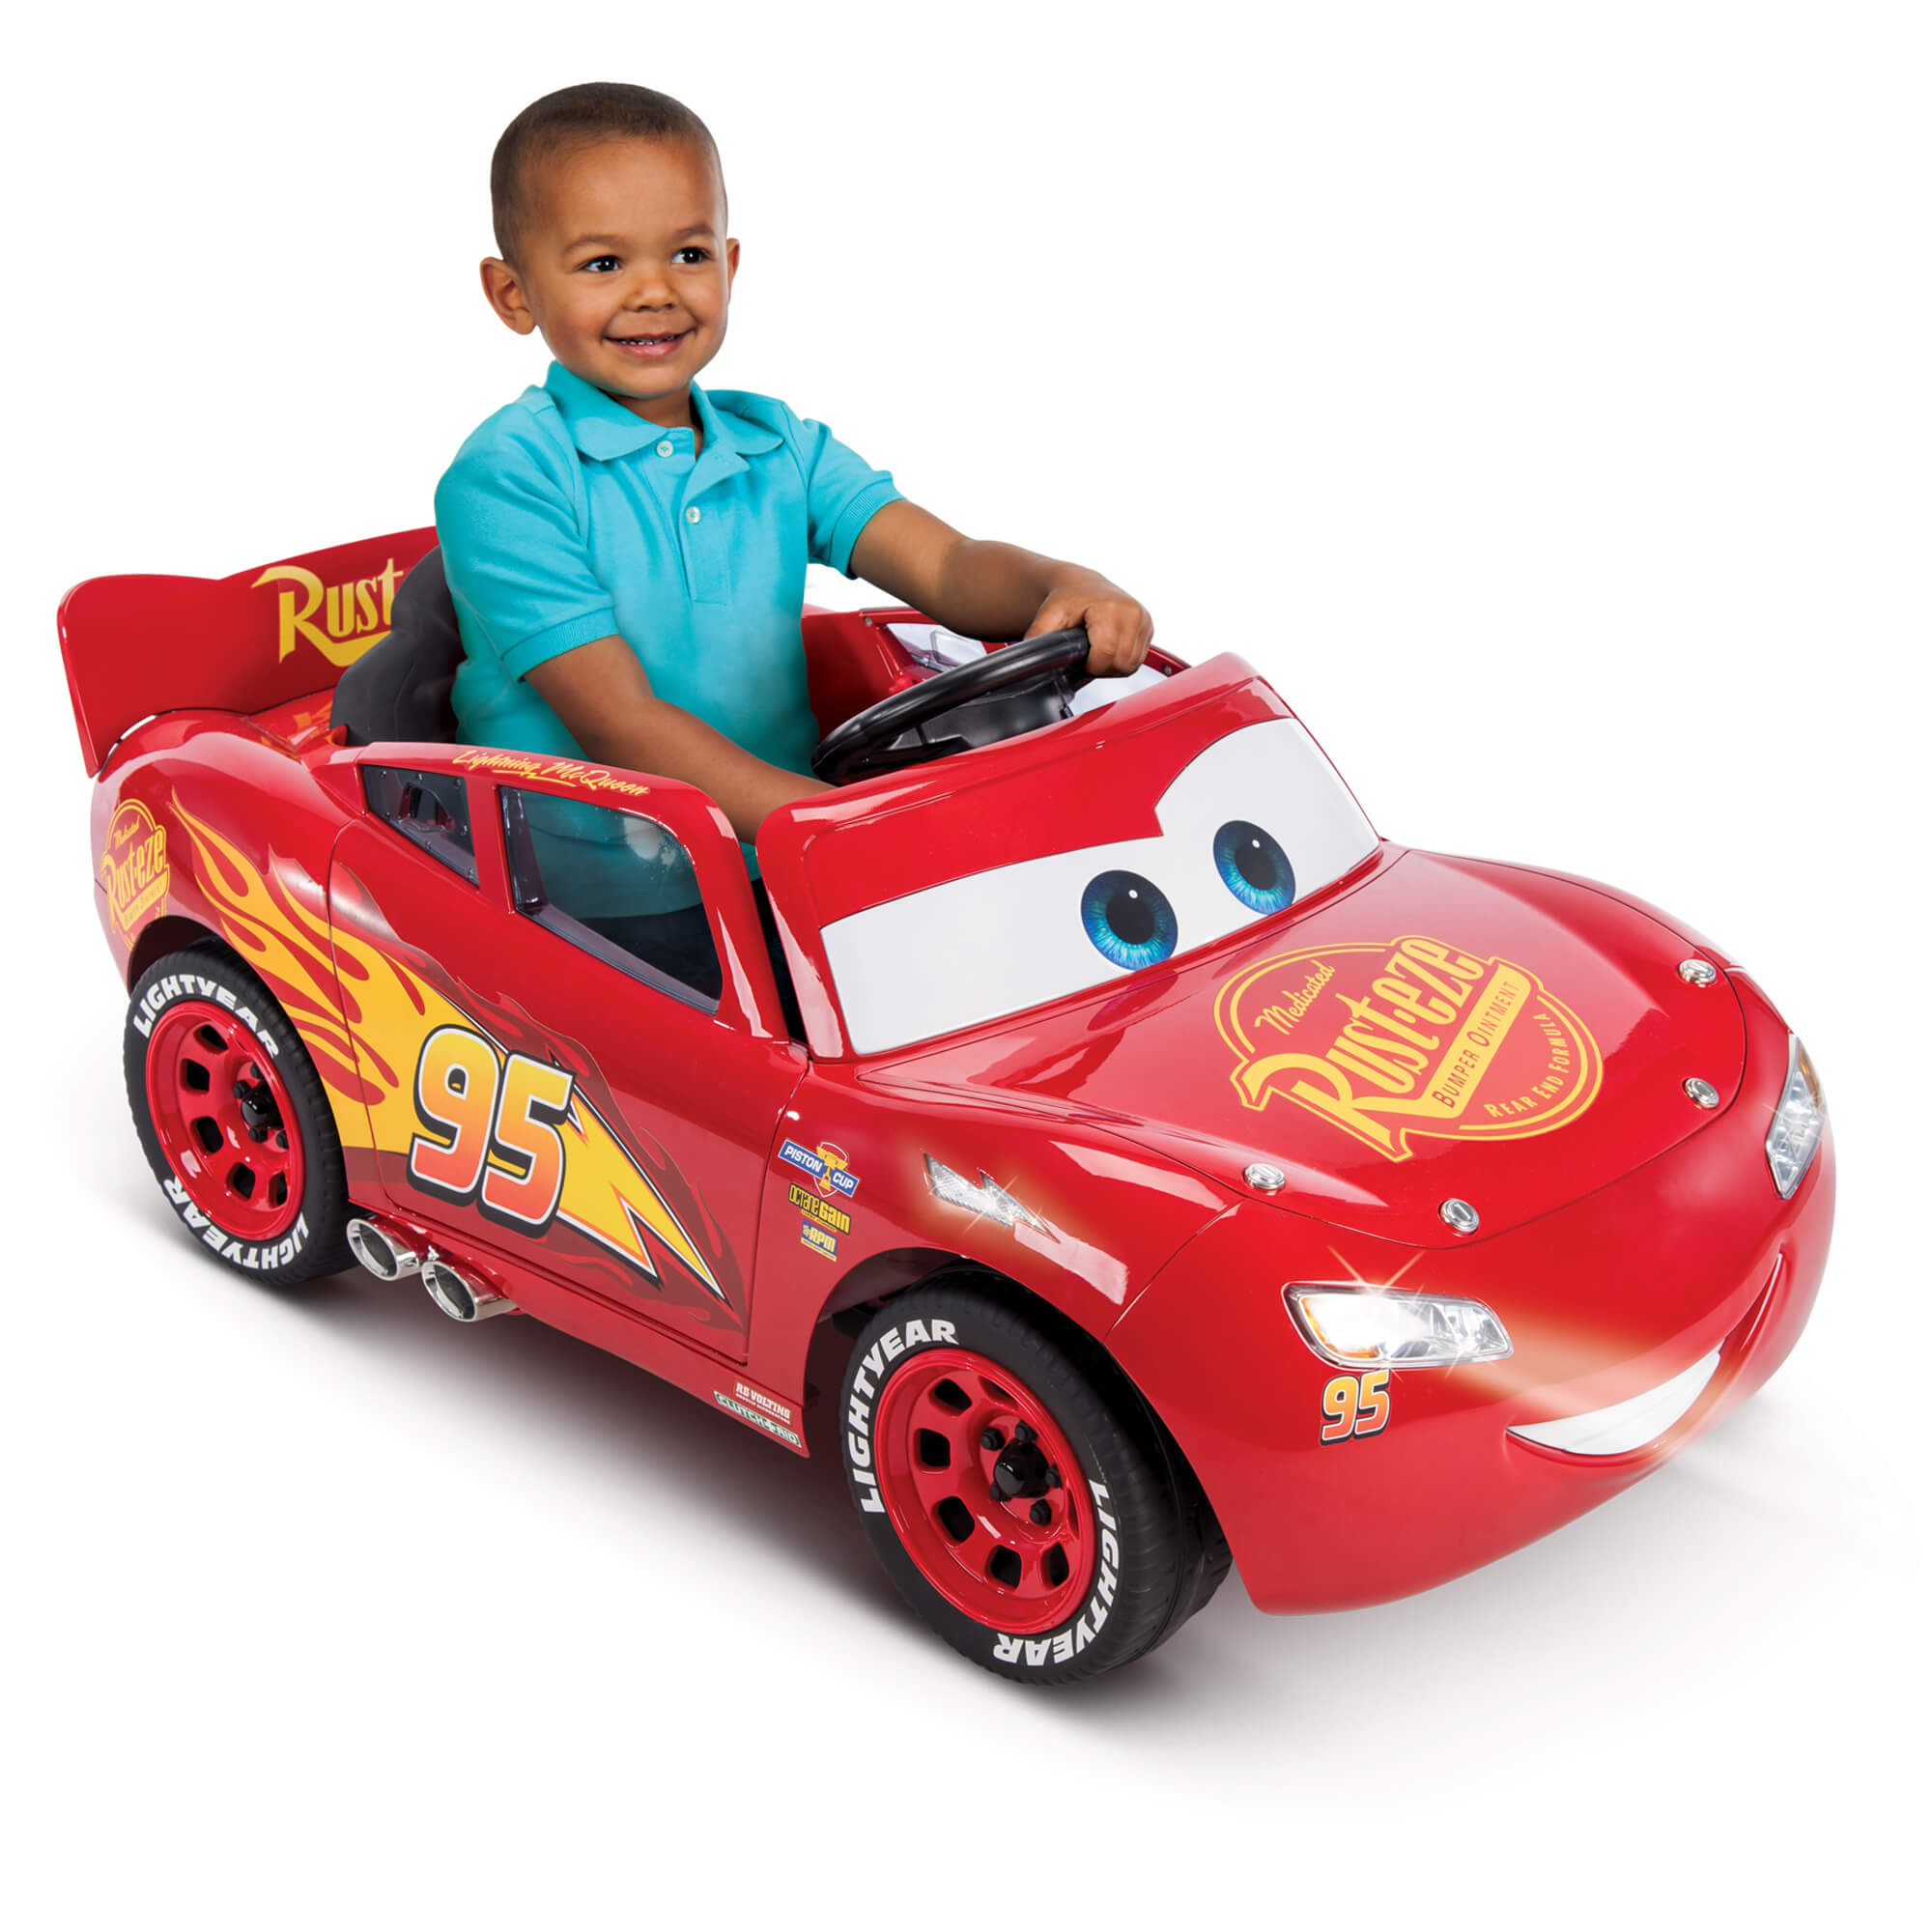 Disney•Pixar Cars 3 Lightning McQueen 6V Battery-Powered